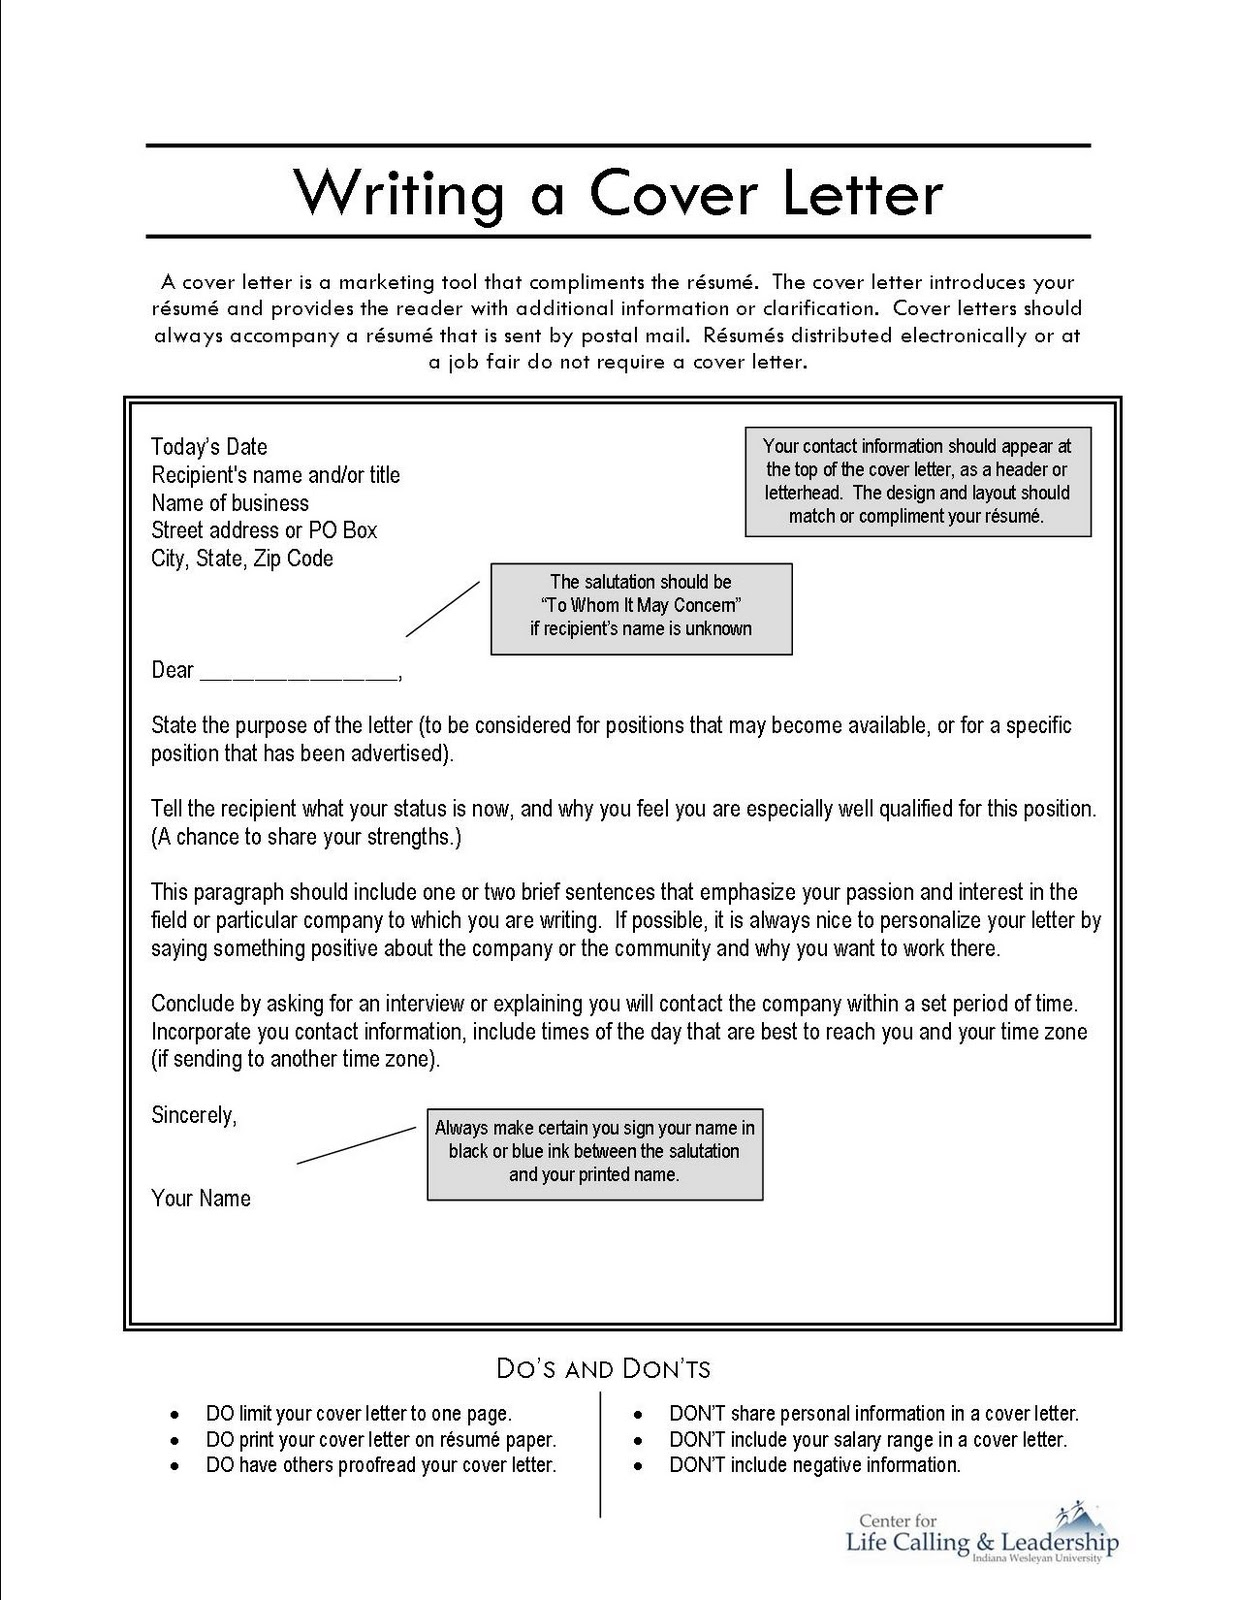 custom cover letter writing for hire for phd - Cover Letter With Resume